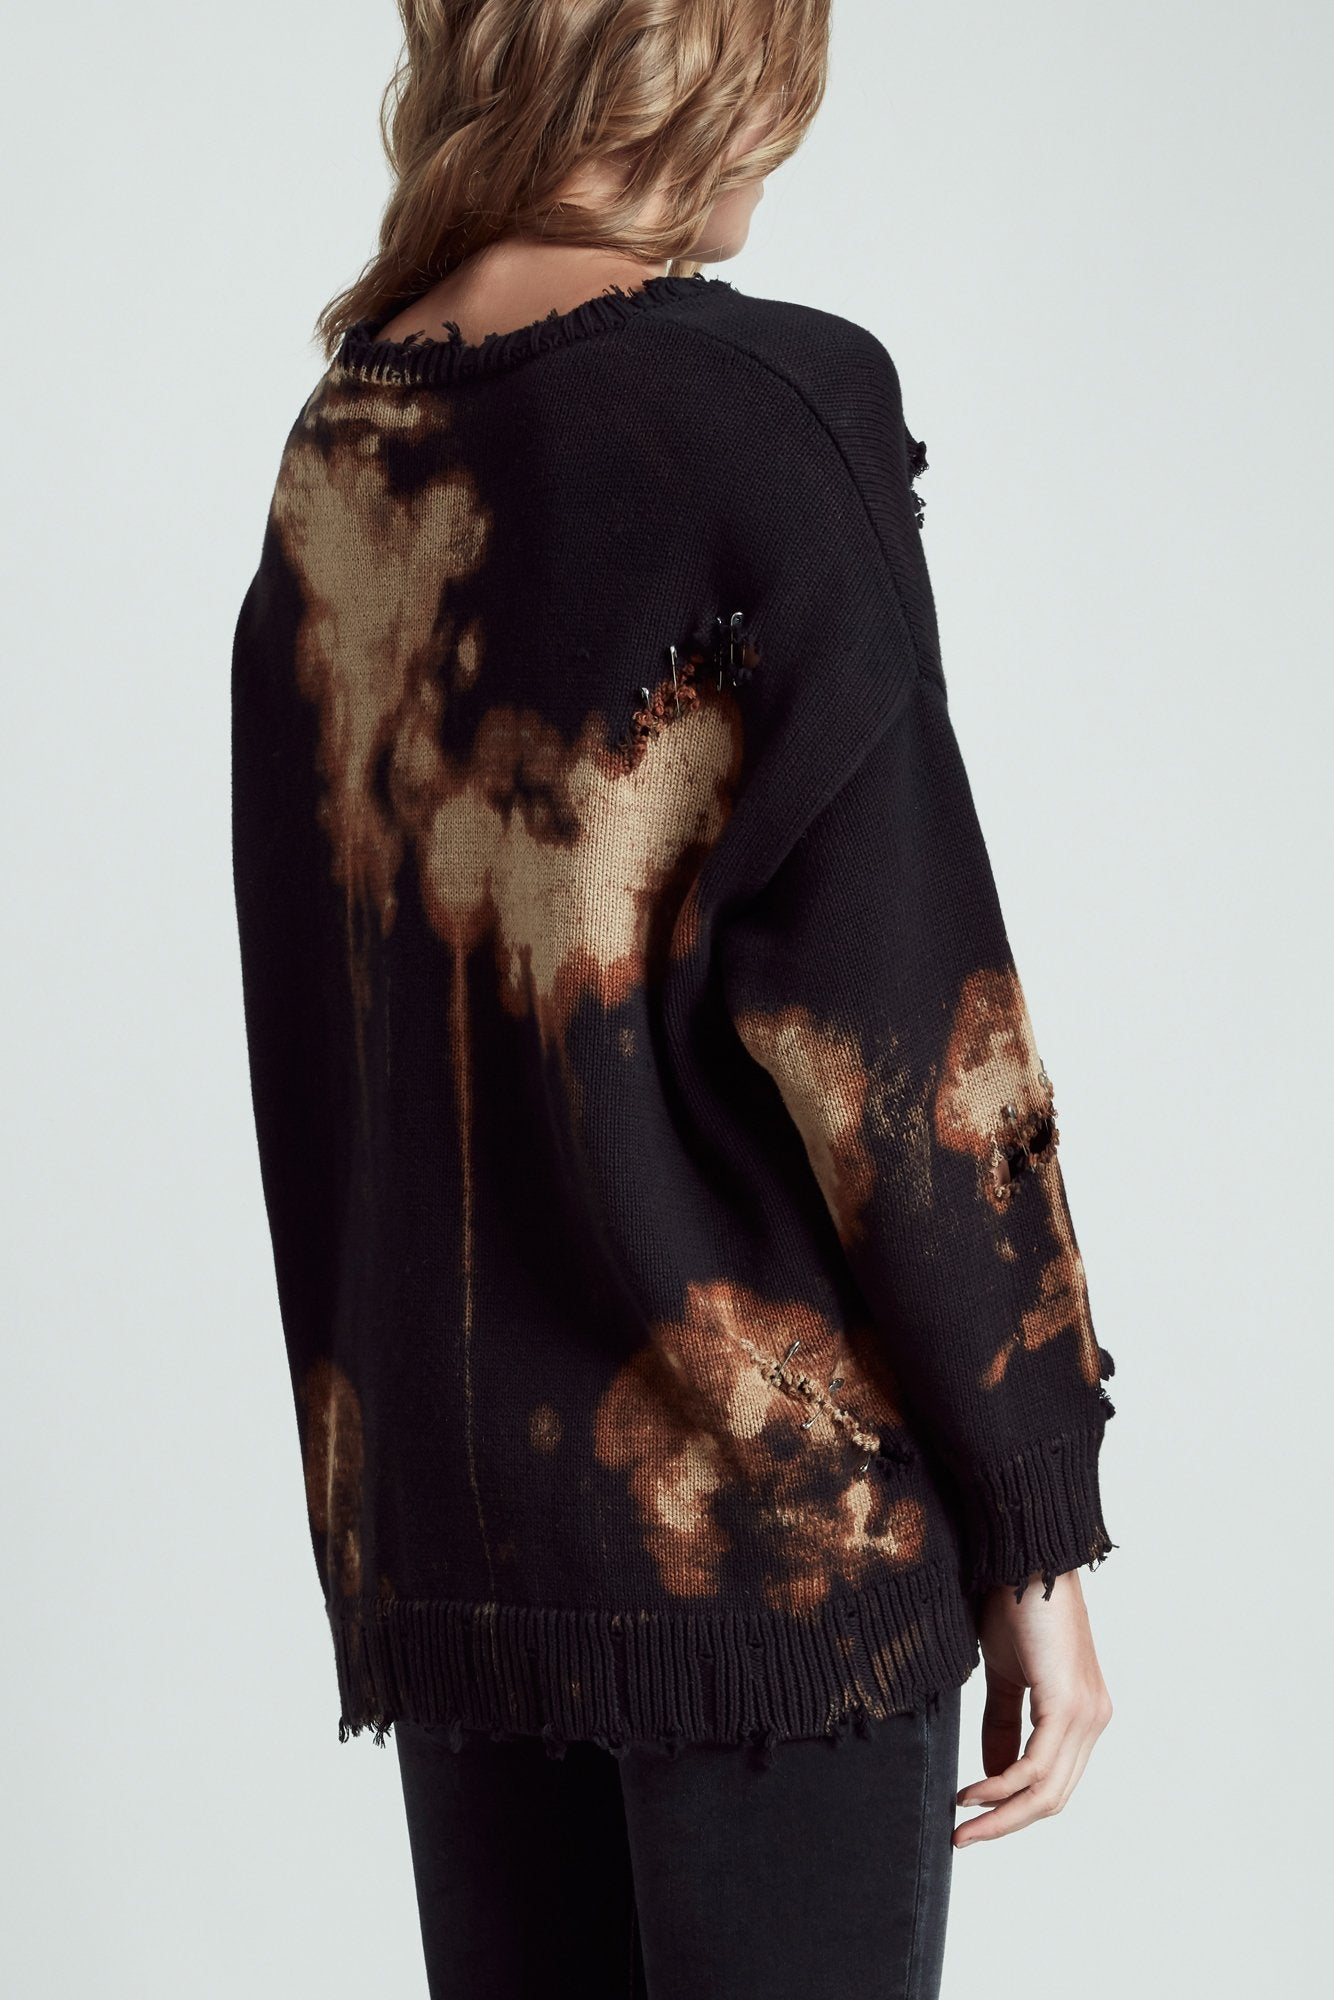 Bleached Distressed Crewneck Sweater - Black with Bleach